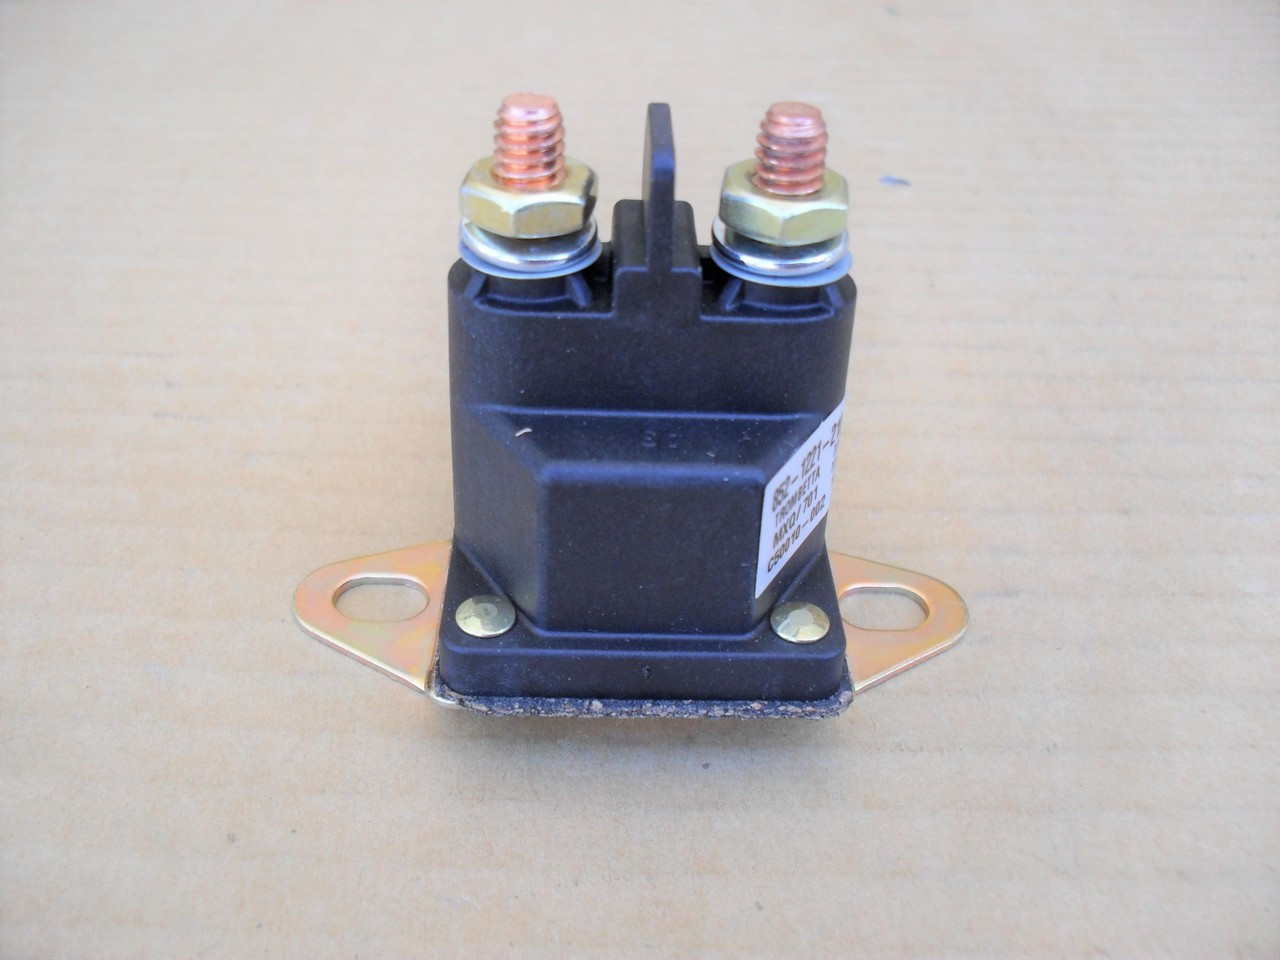 Starter Solenoid for Murray 1002004MA, 24285, 424285, 7701100MA